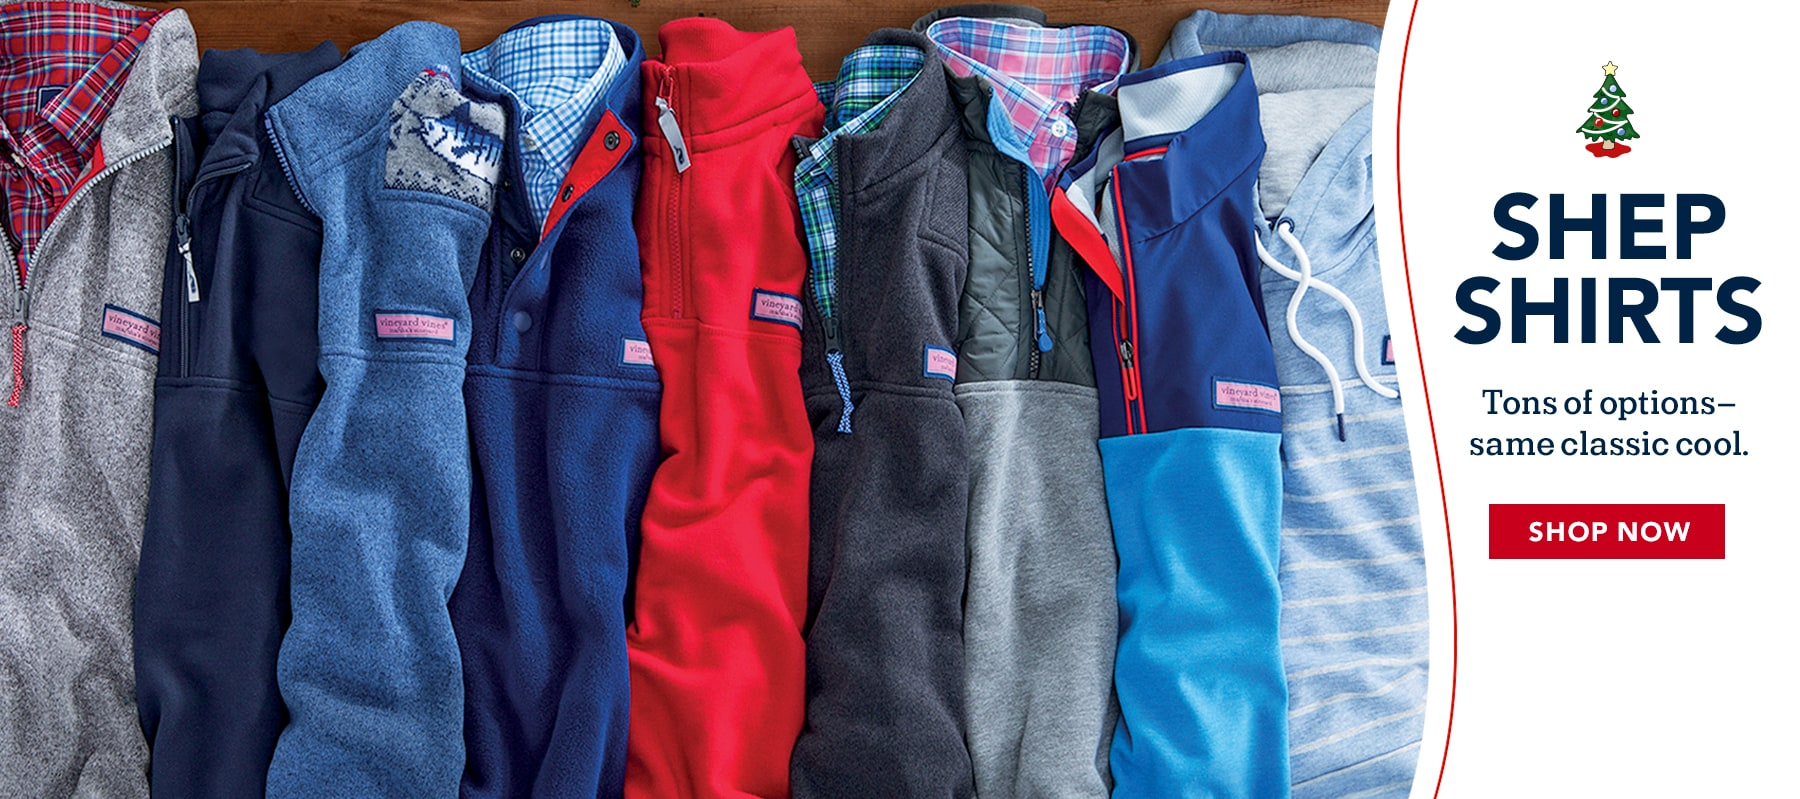 Shep shirts. Tons of options - same classic cool. Shop now.